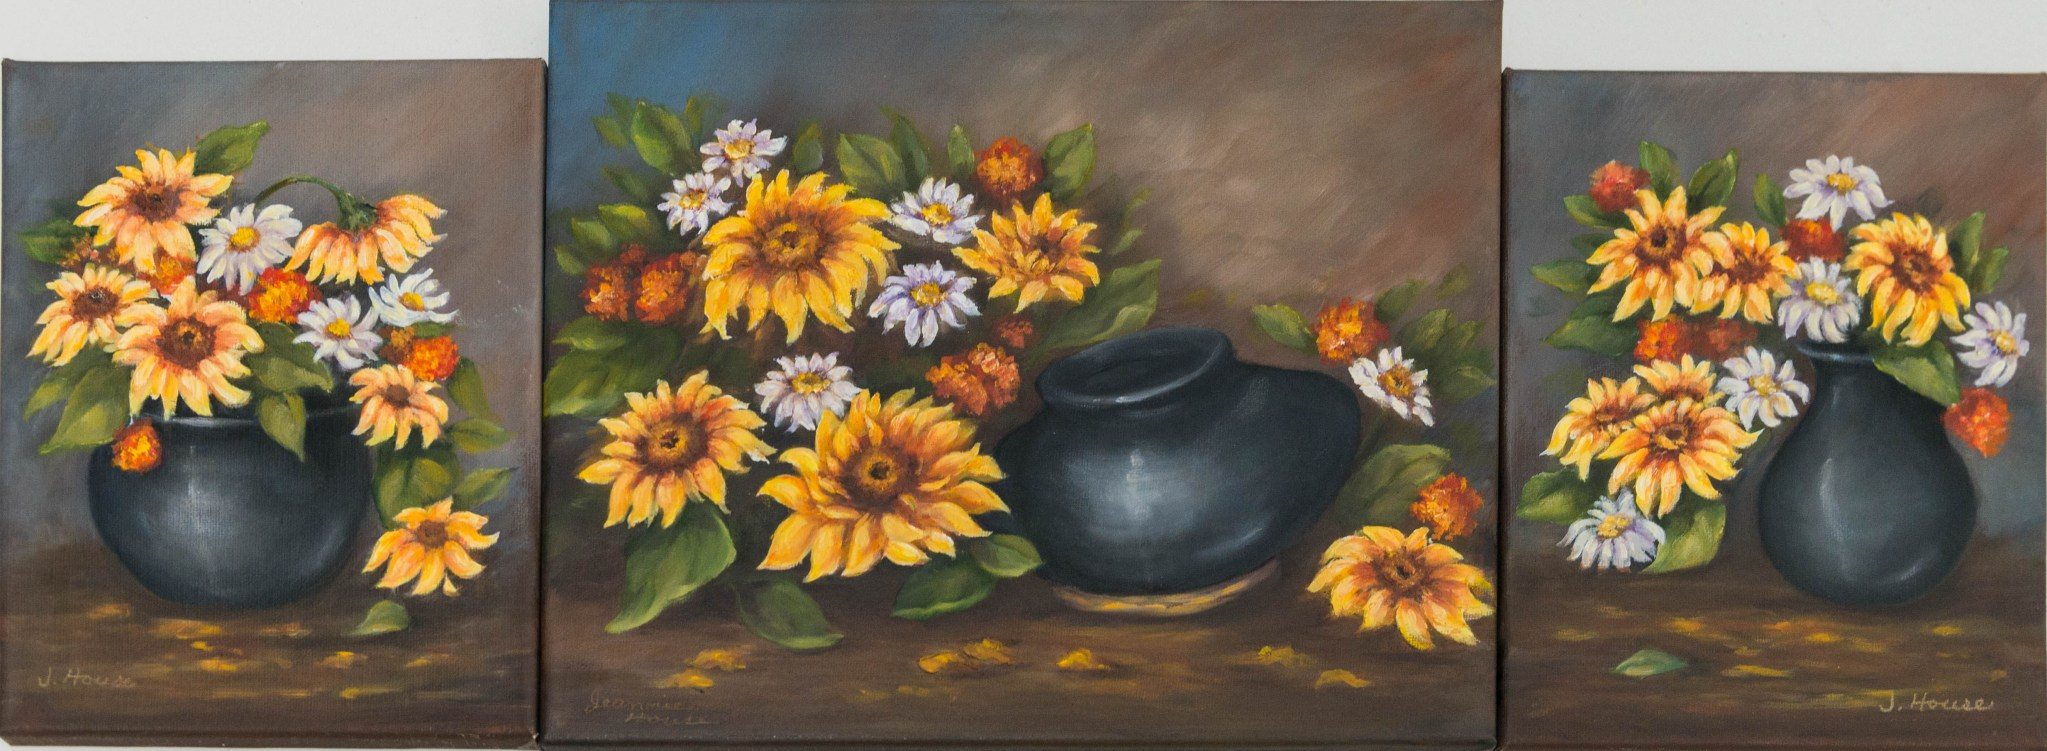 Flower Triptych by Jeannie House